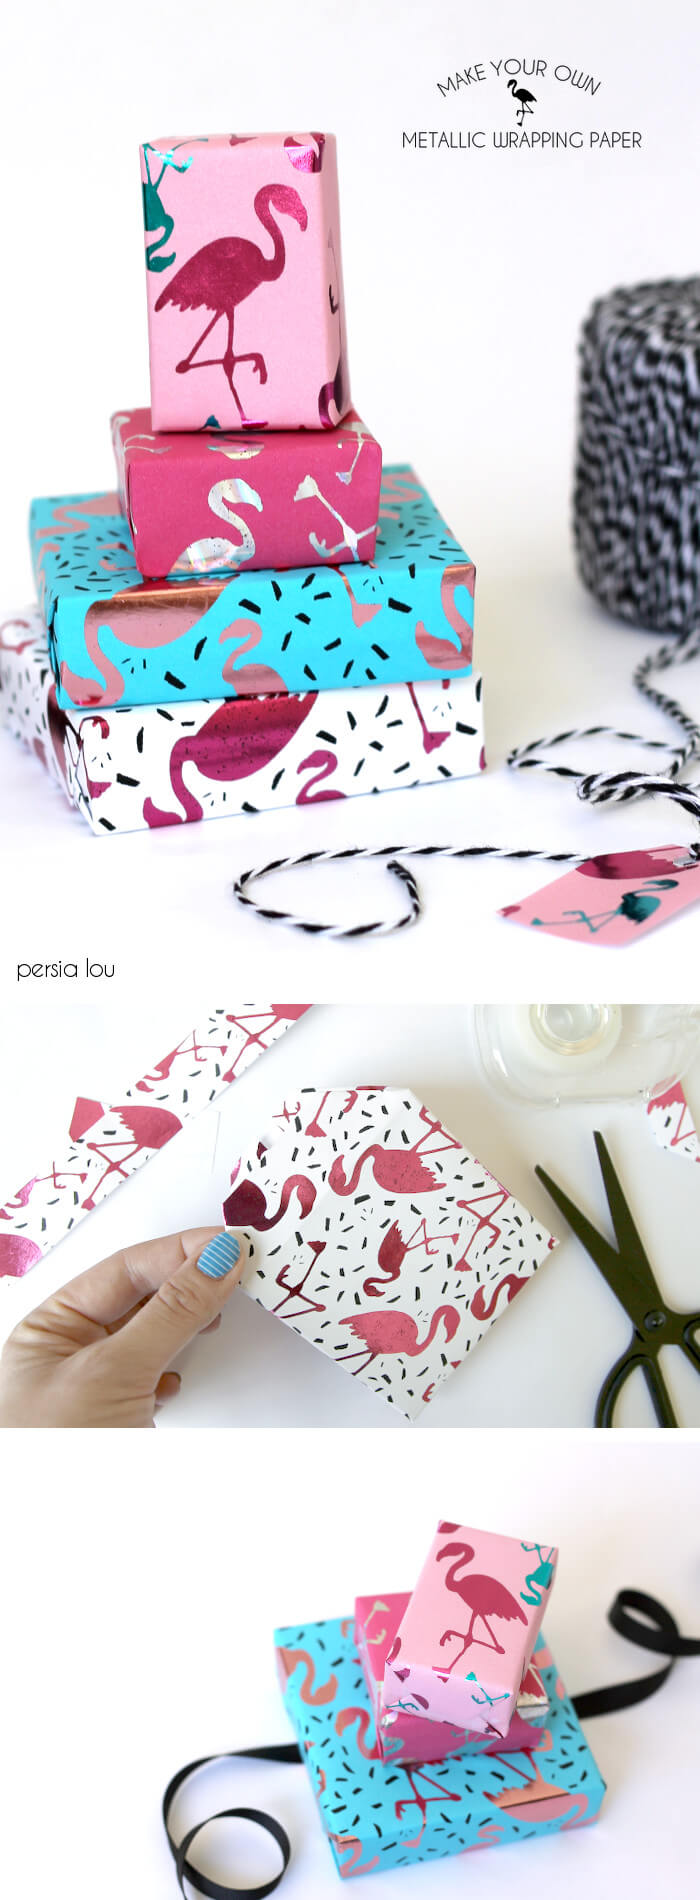 Make your own metallic flamingo wrapping paper! Free downloads.